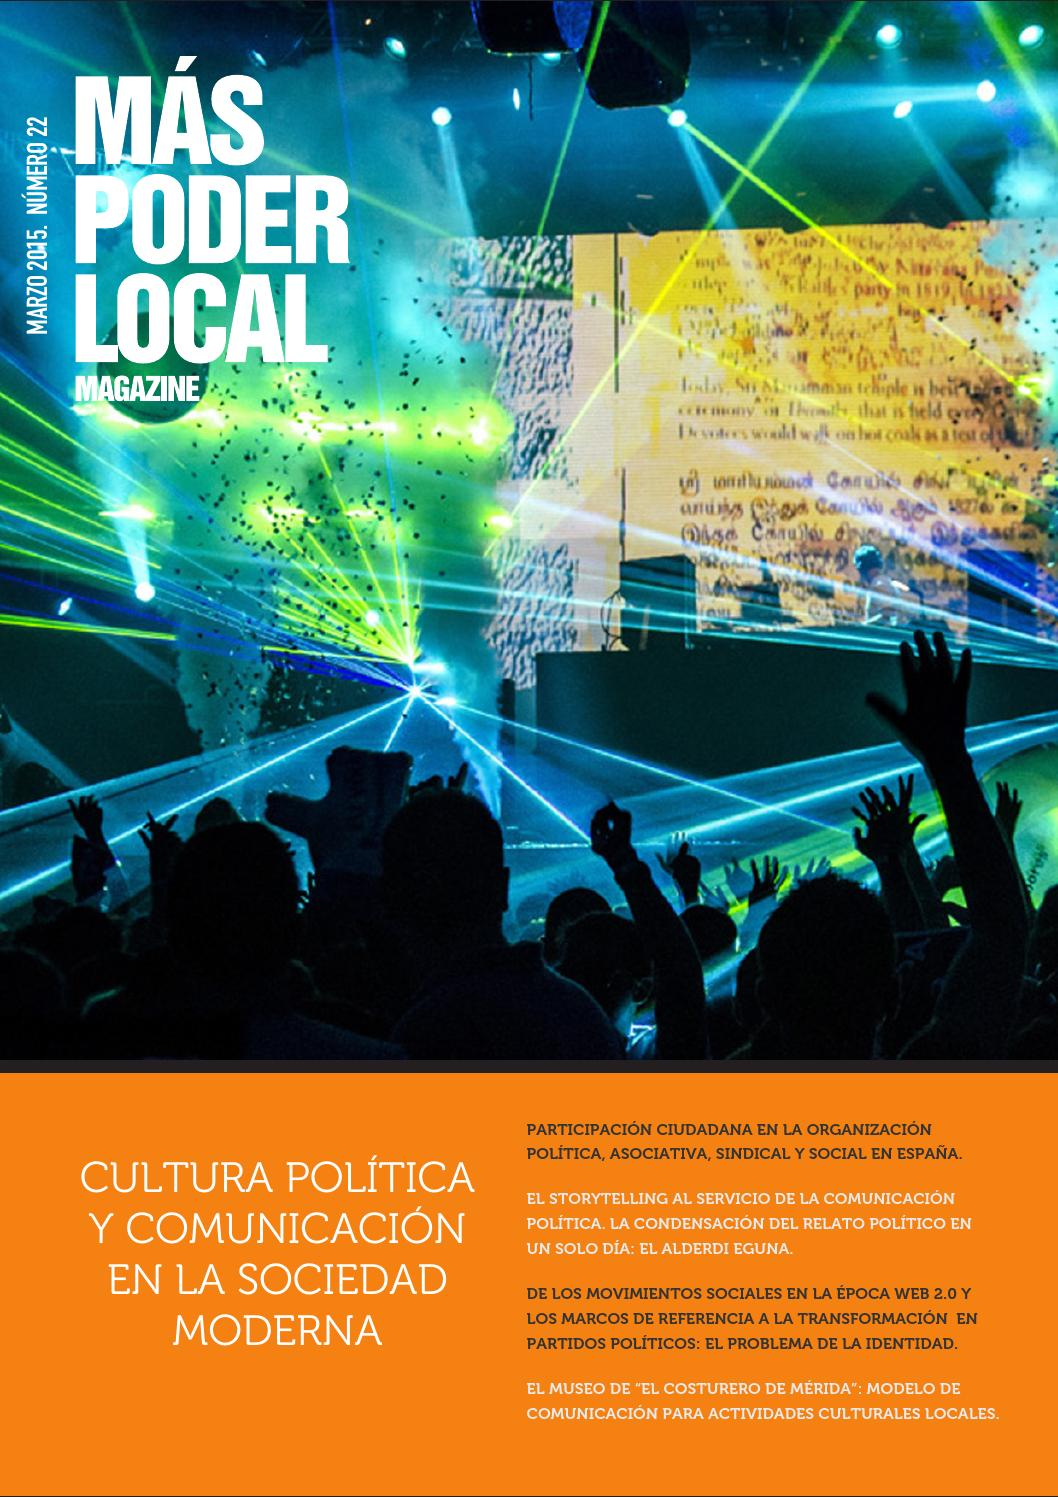 Más Poder Local nº 22 by Más Poder Local magazine - issuu